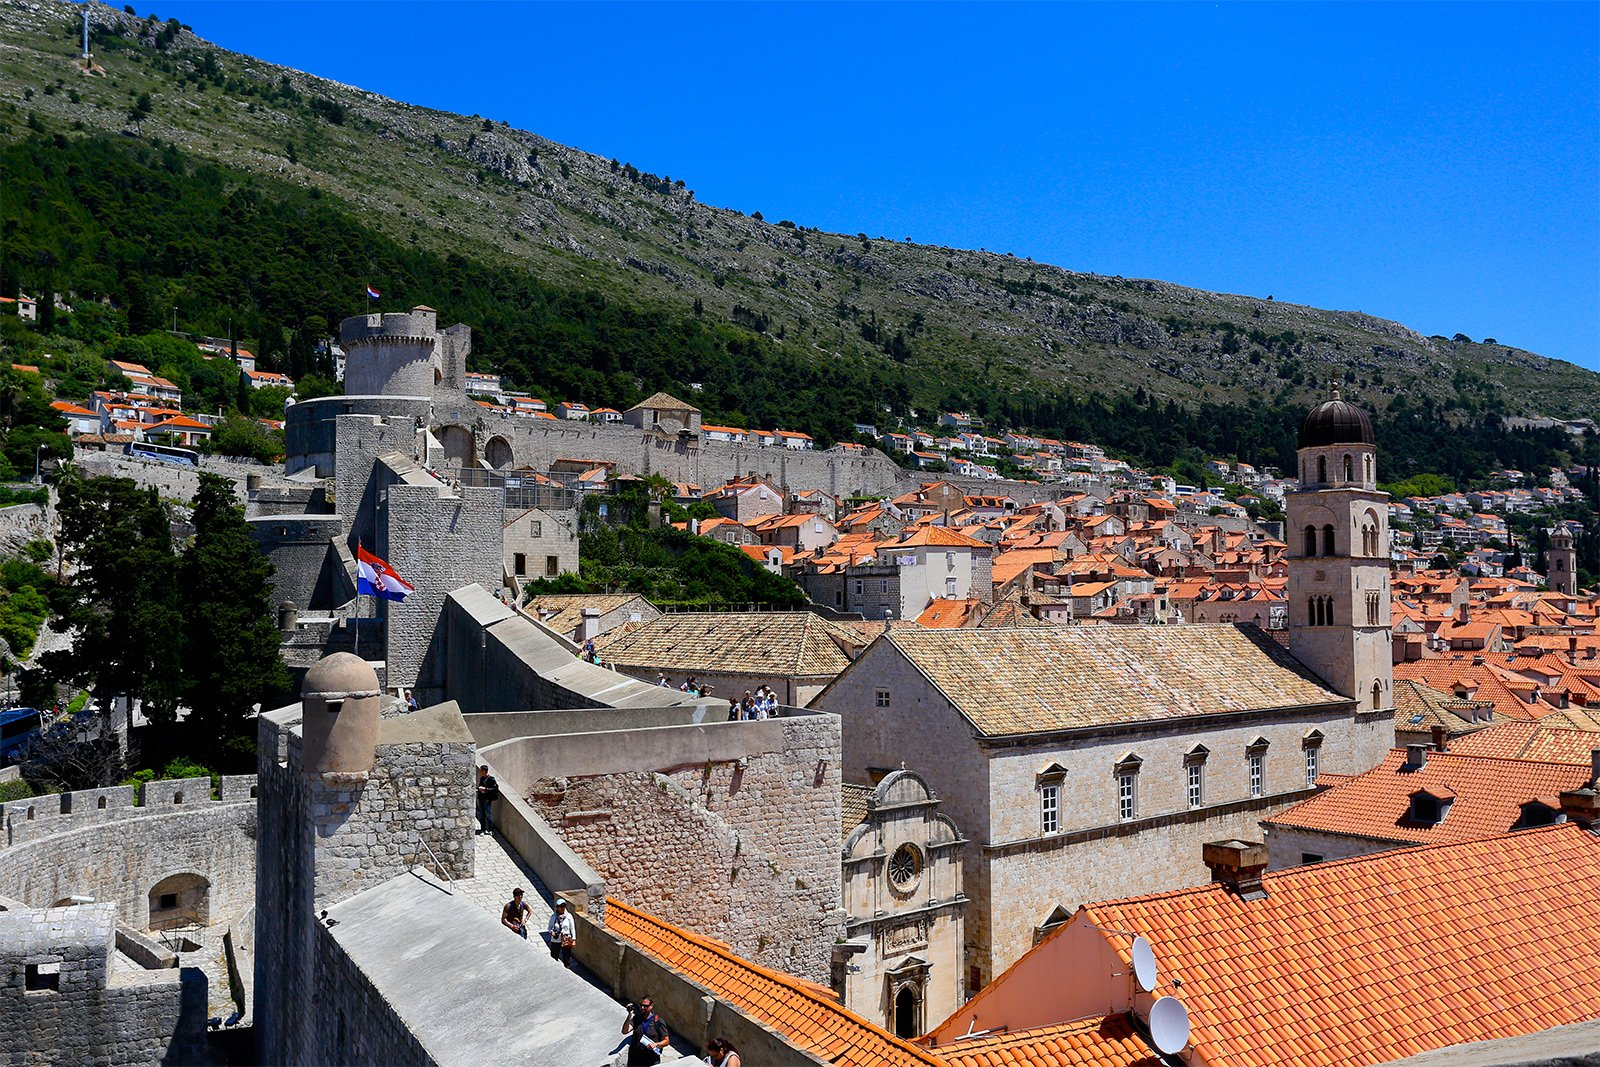 How to walk atop the City Walls of Dubrovnik in Dubrovnik